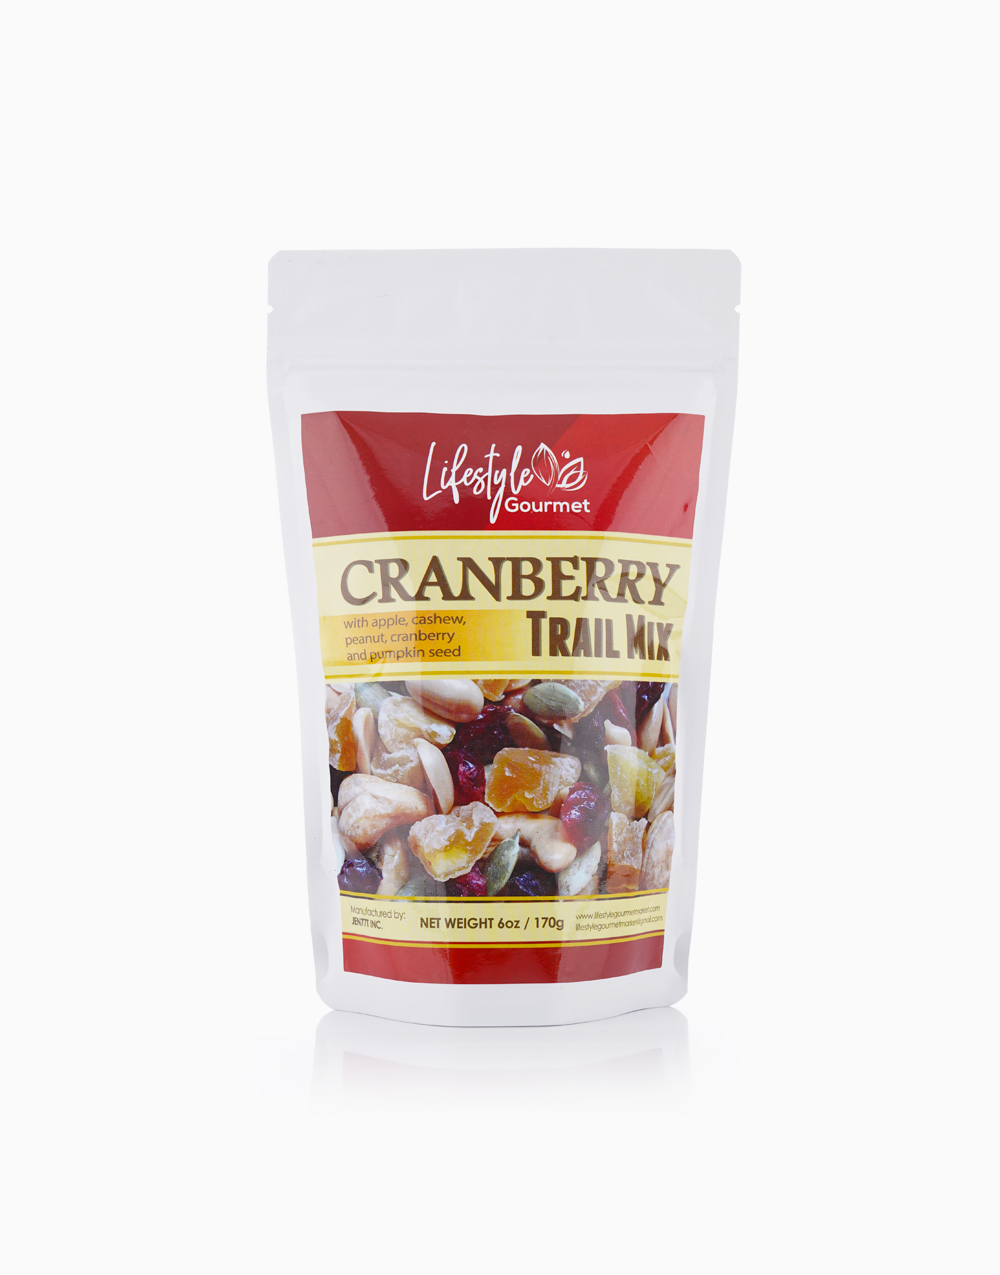 Cranberry Trail Mix (170g) by Lifestyle Gourmet